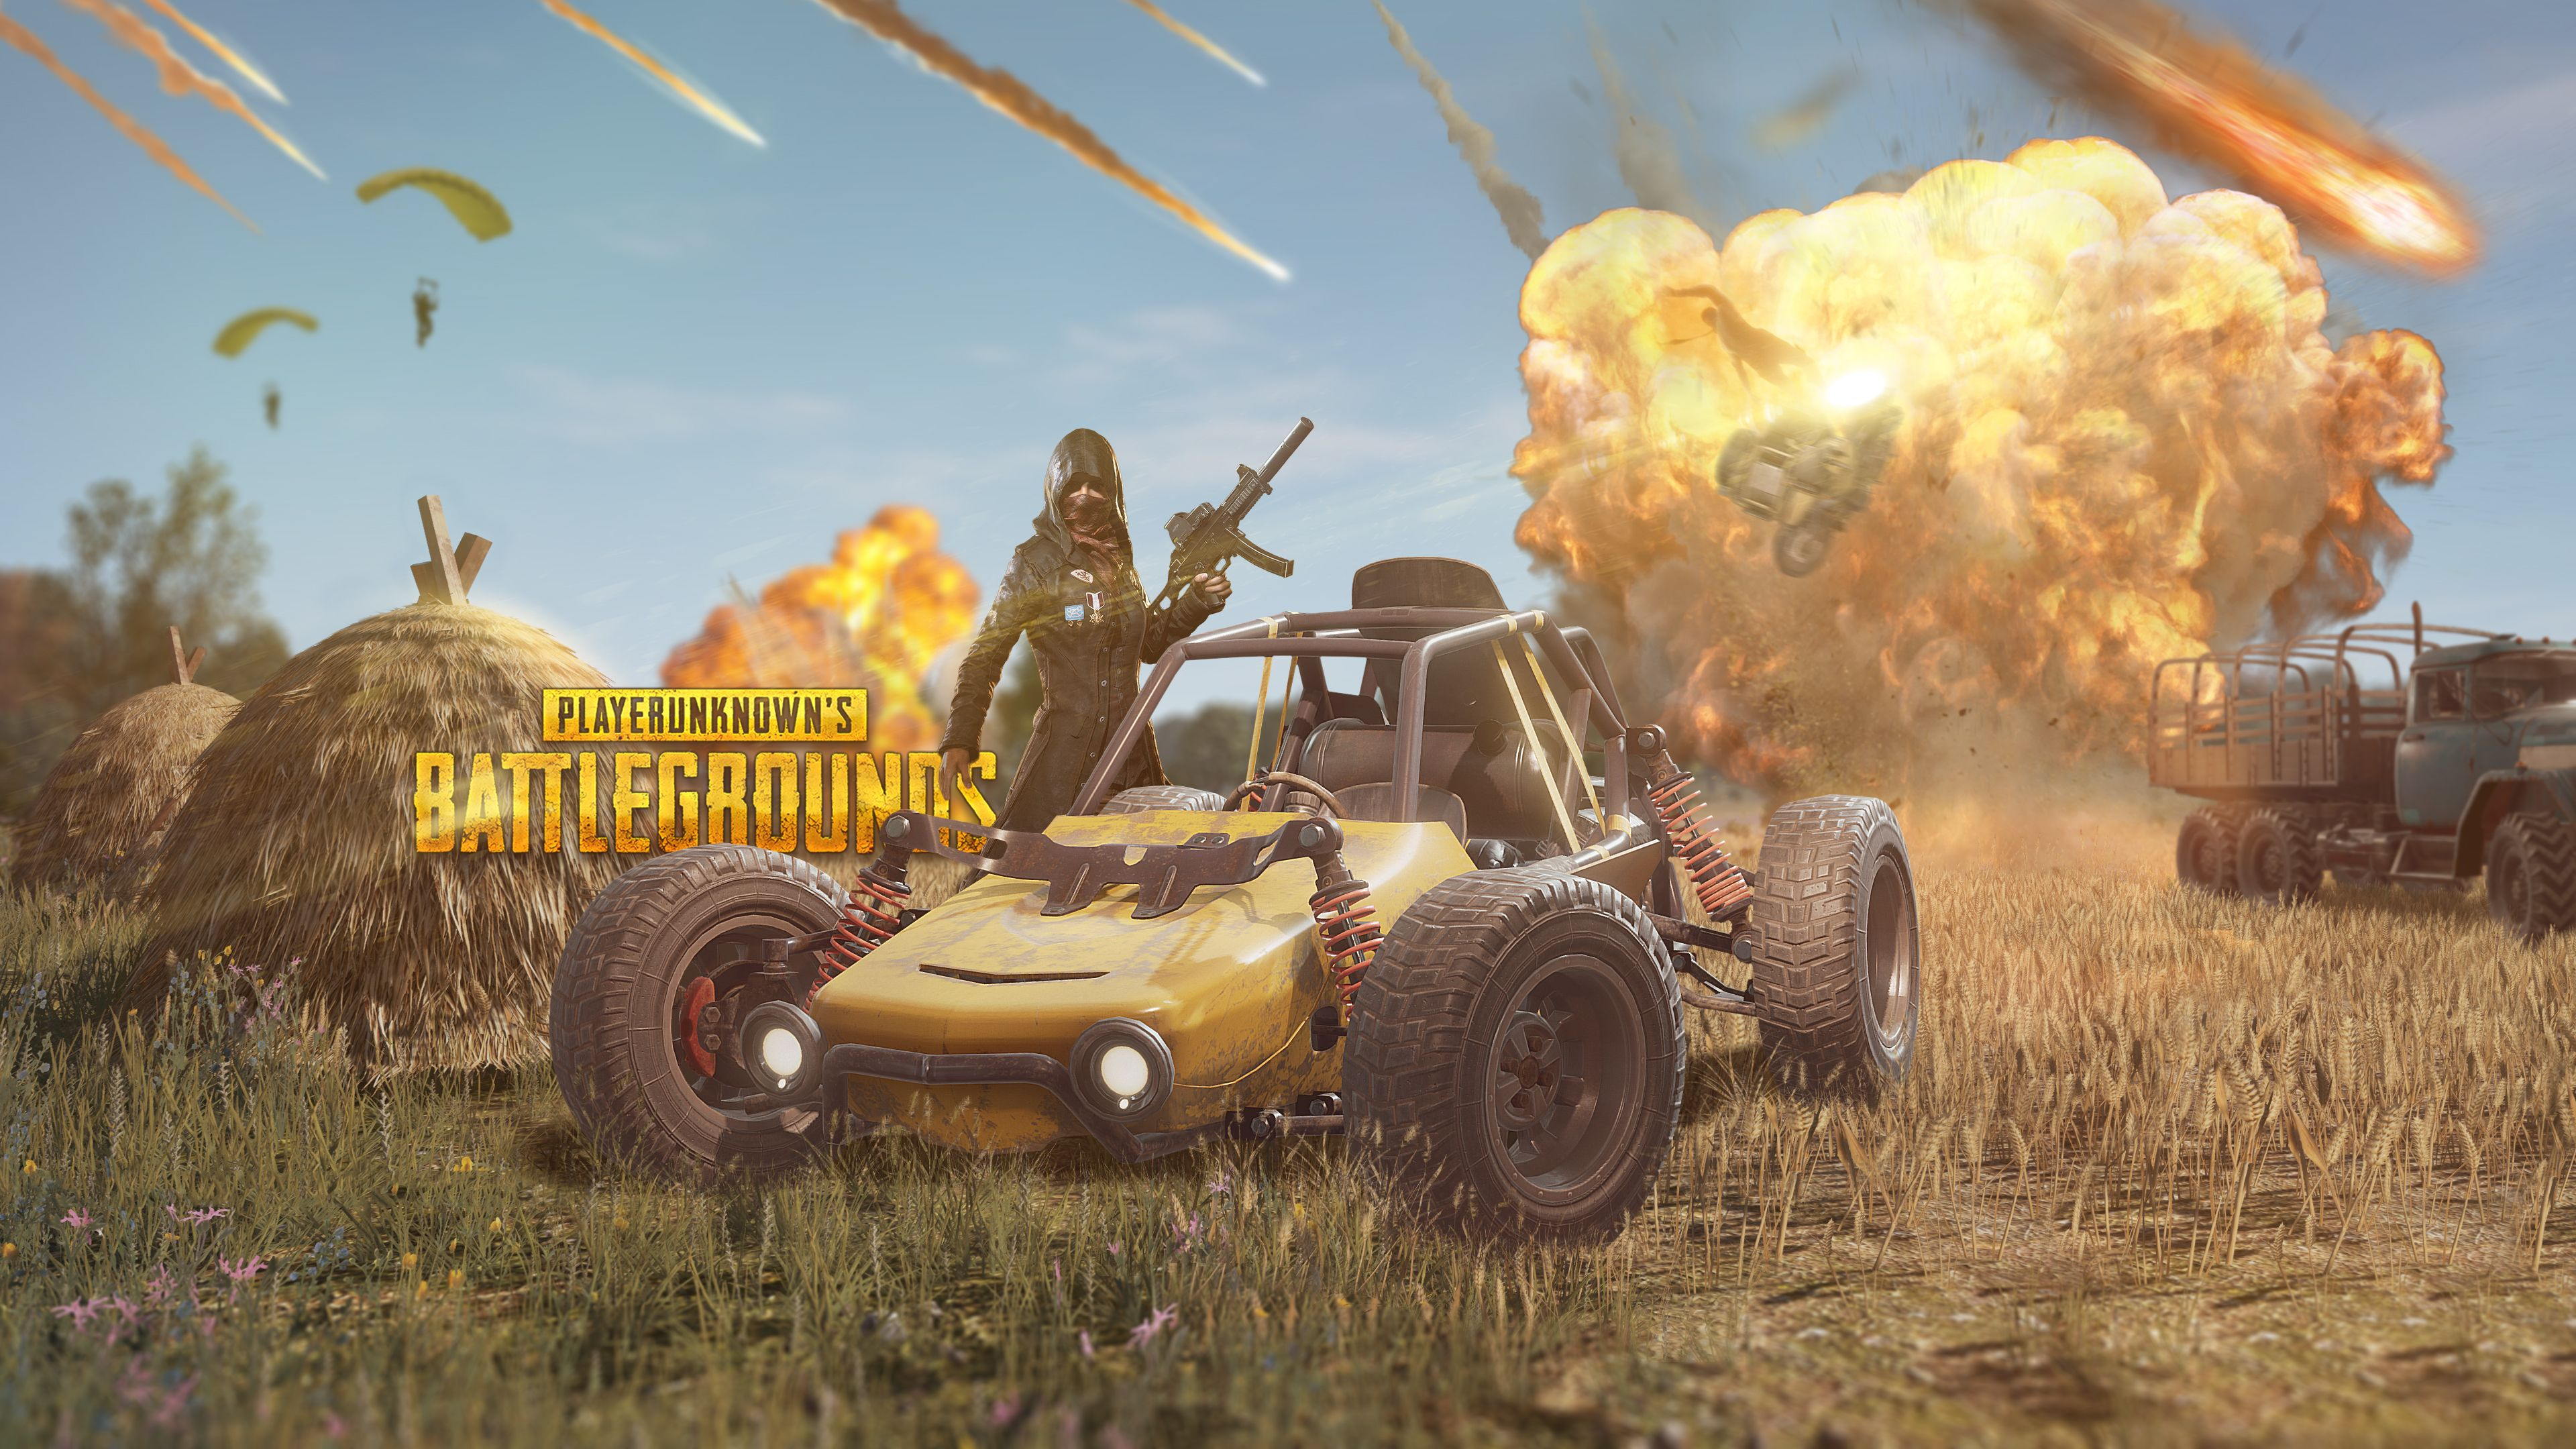 Unknown Facts About Pubg Playerunknown S Battlegrounds Game